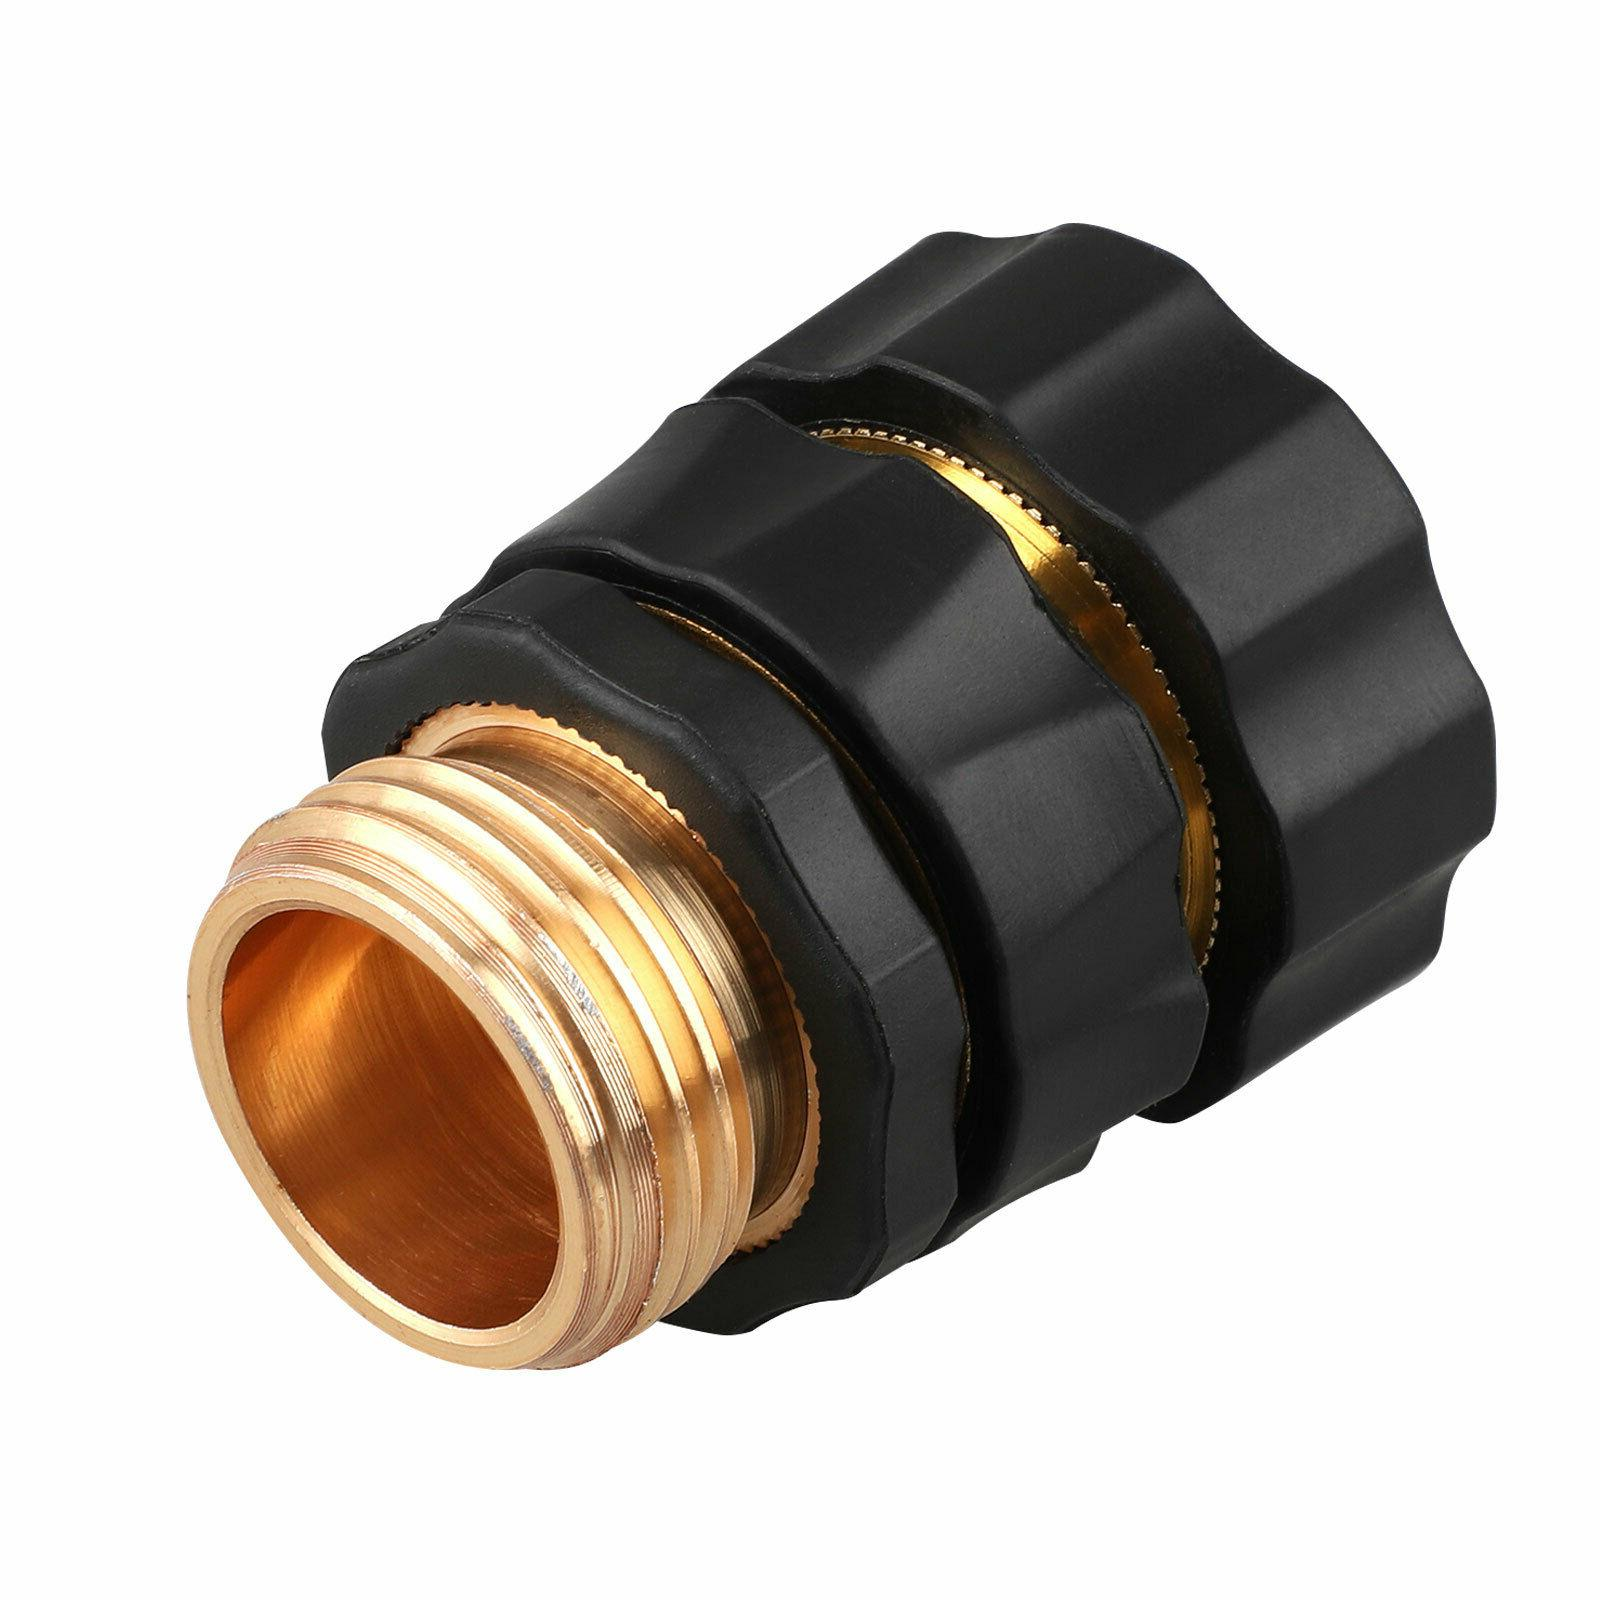 4 Garden Hose Set Pressure Washer Connectors